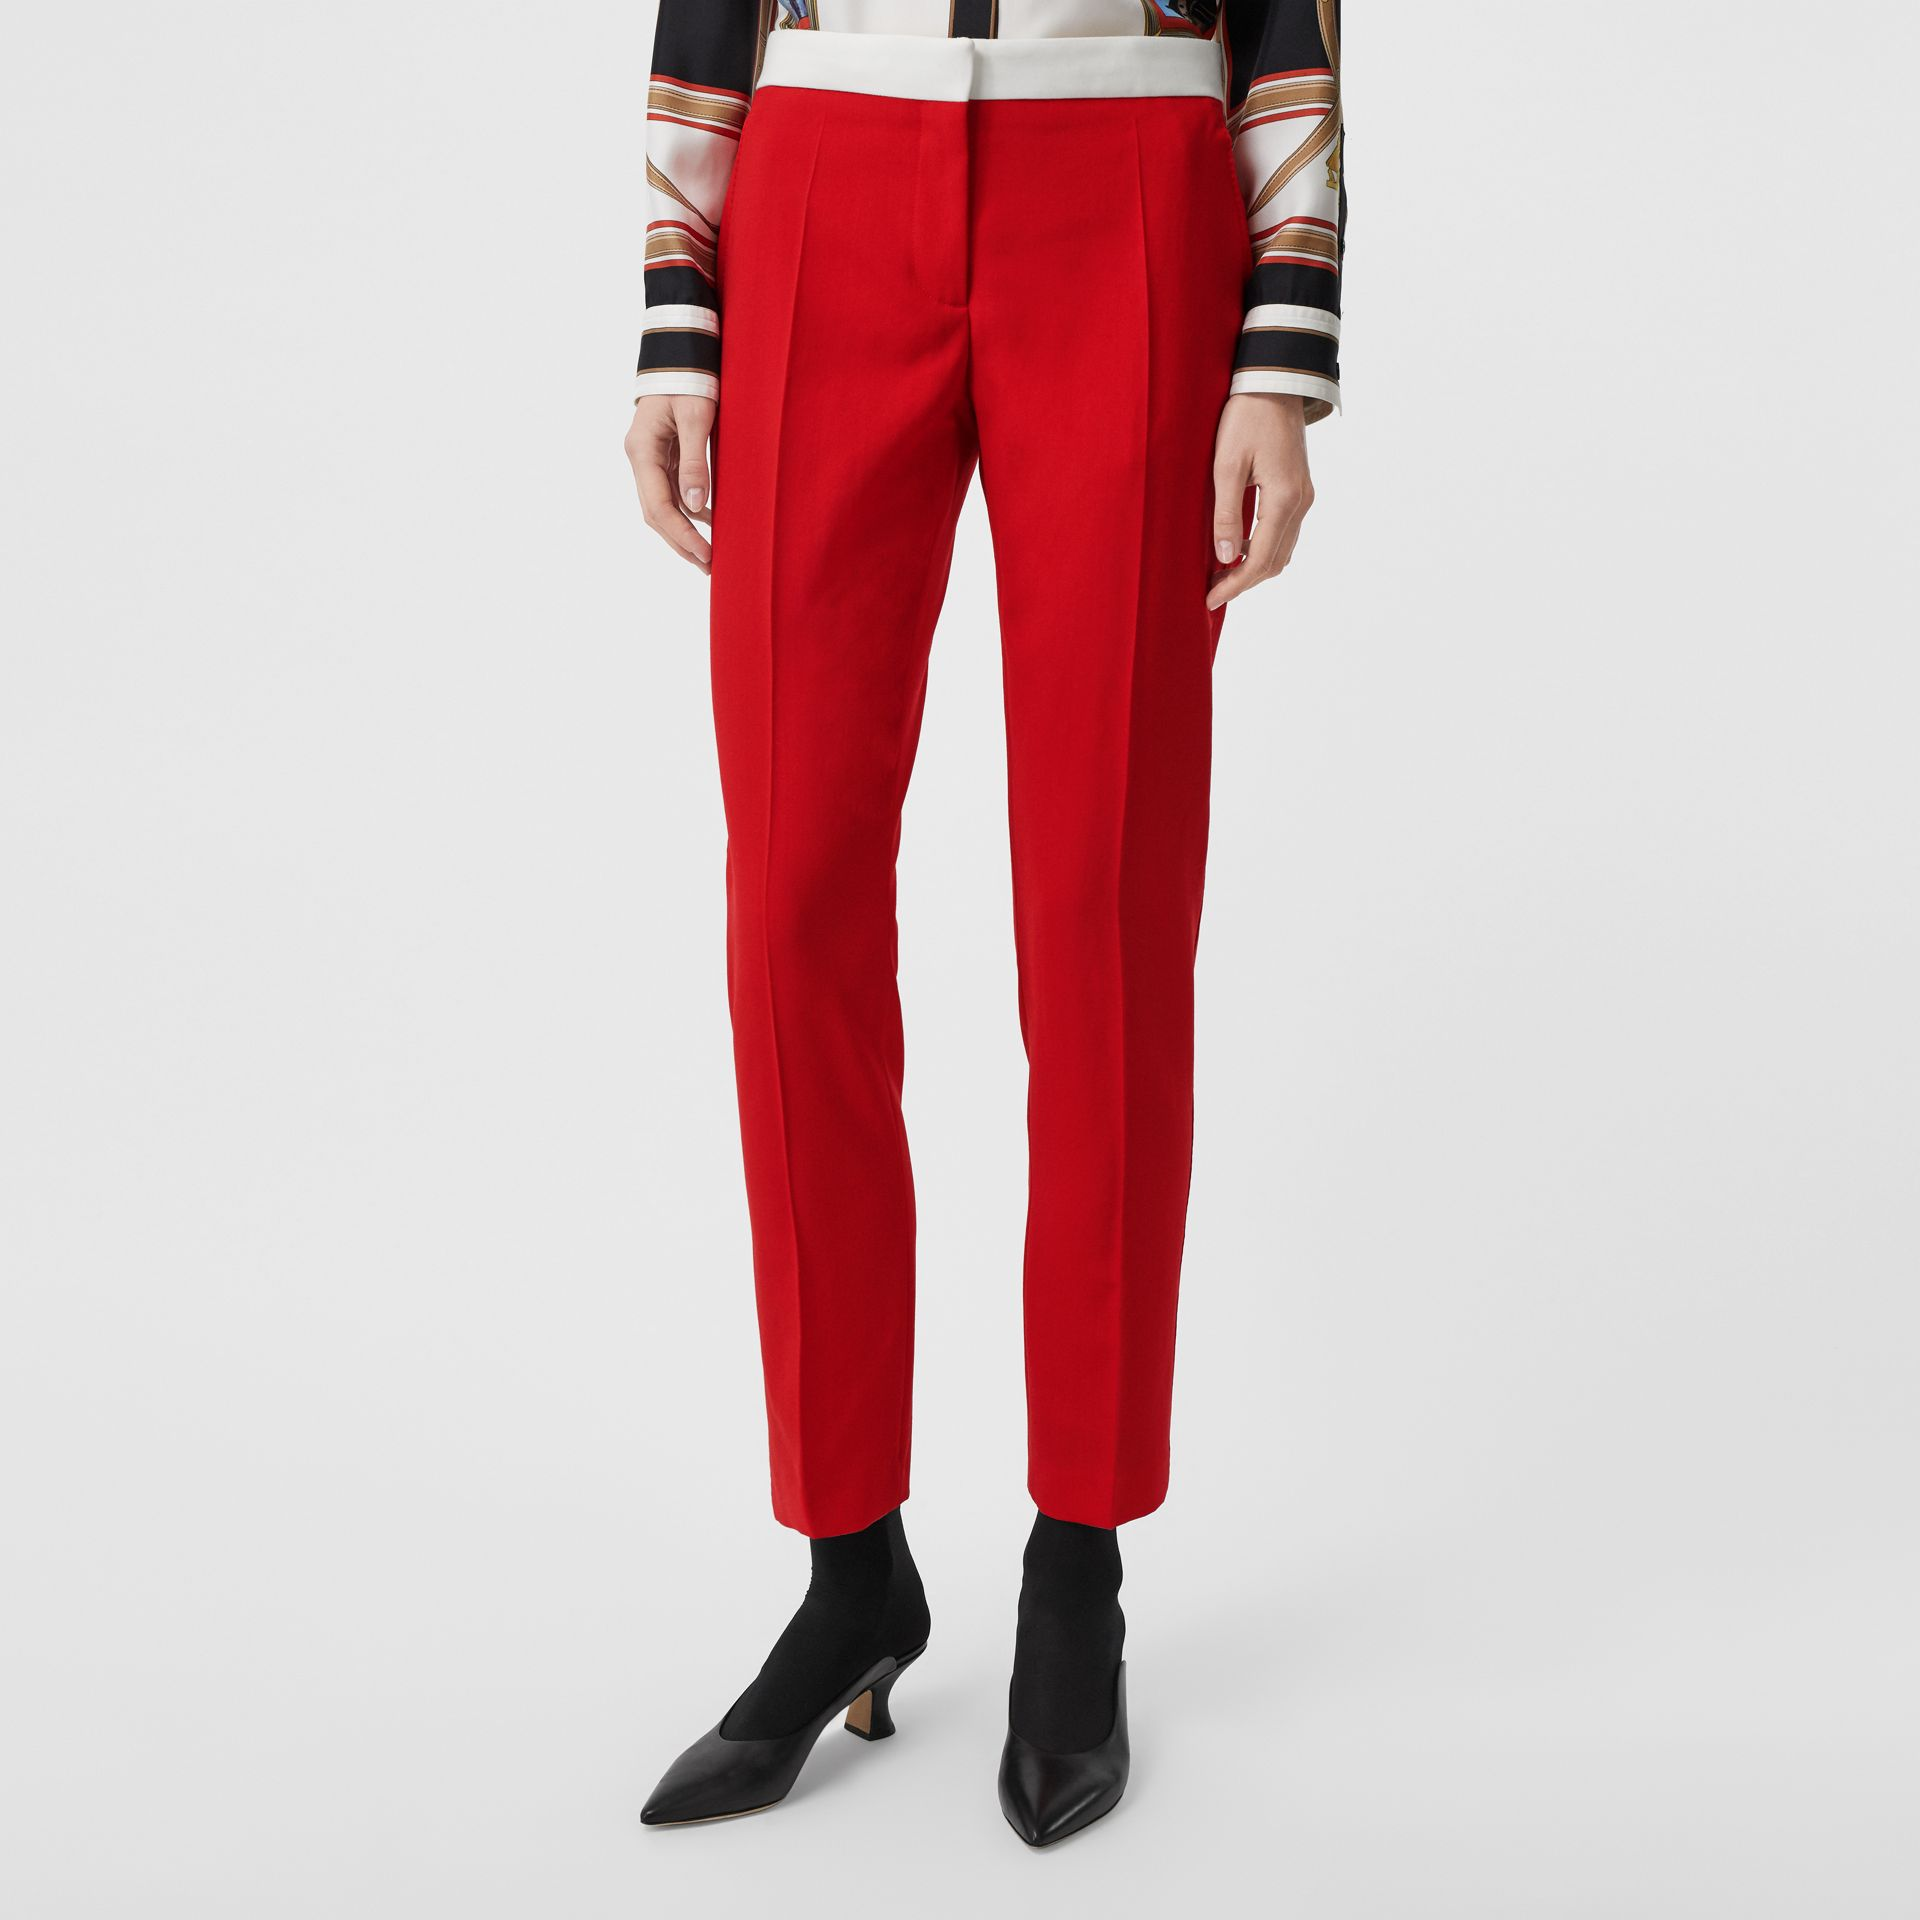 Two-tone Wool Tailored Trousers in Bright Red - Women | Burberry Hong Kong S.A.R - gallery image 4